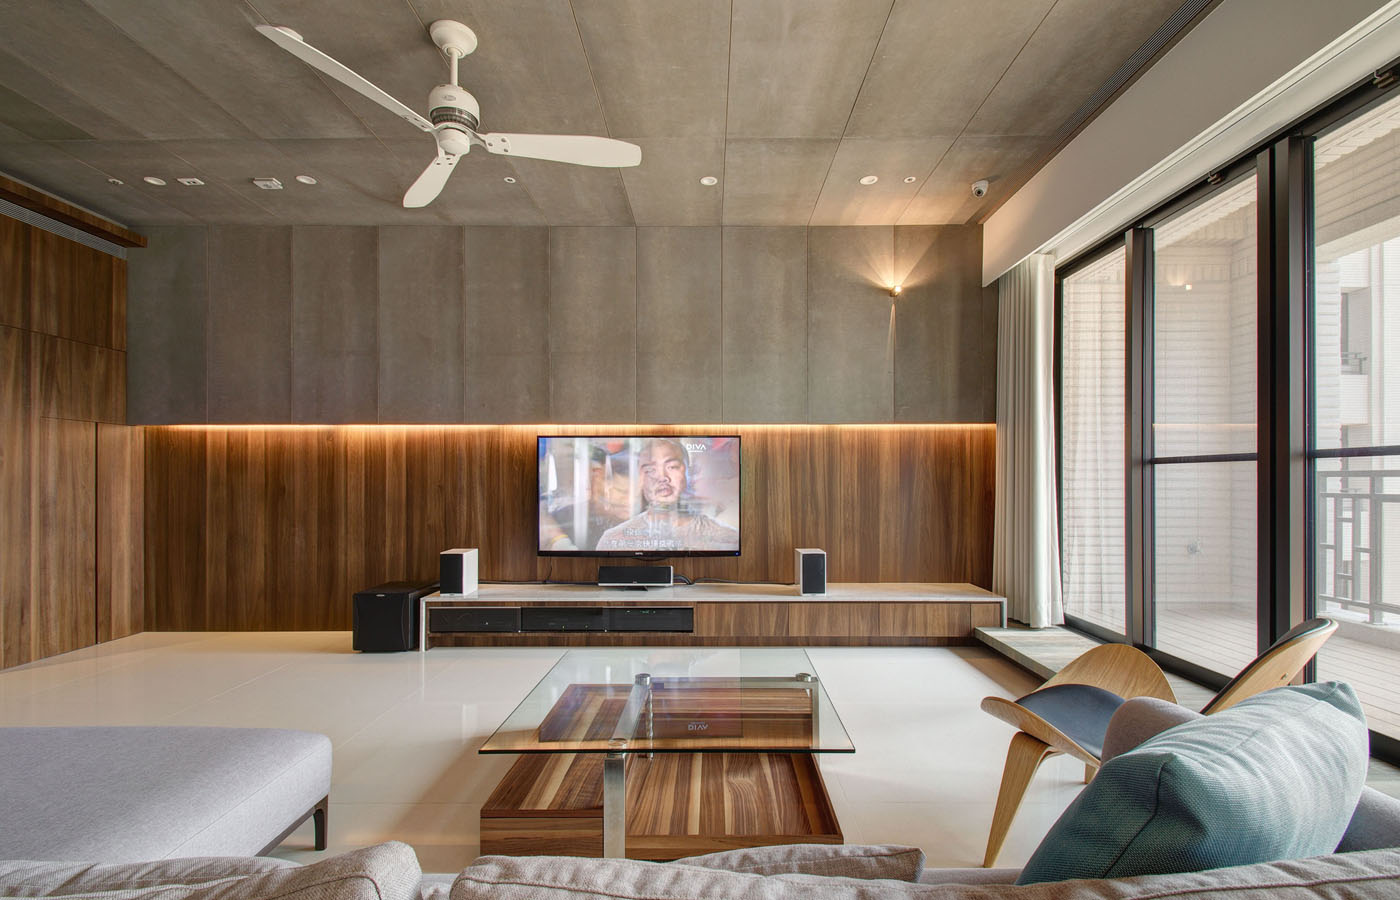 Fullsize Of Modern Decoration Ideas For Apartments